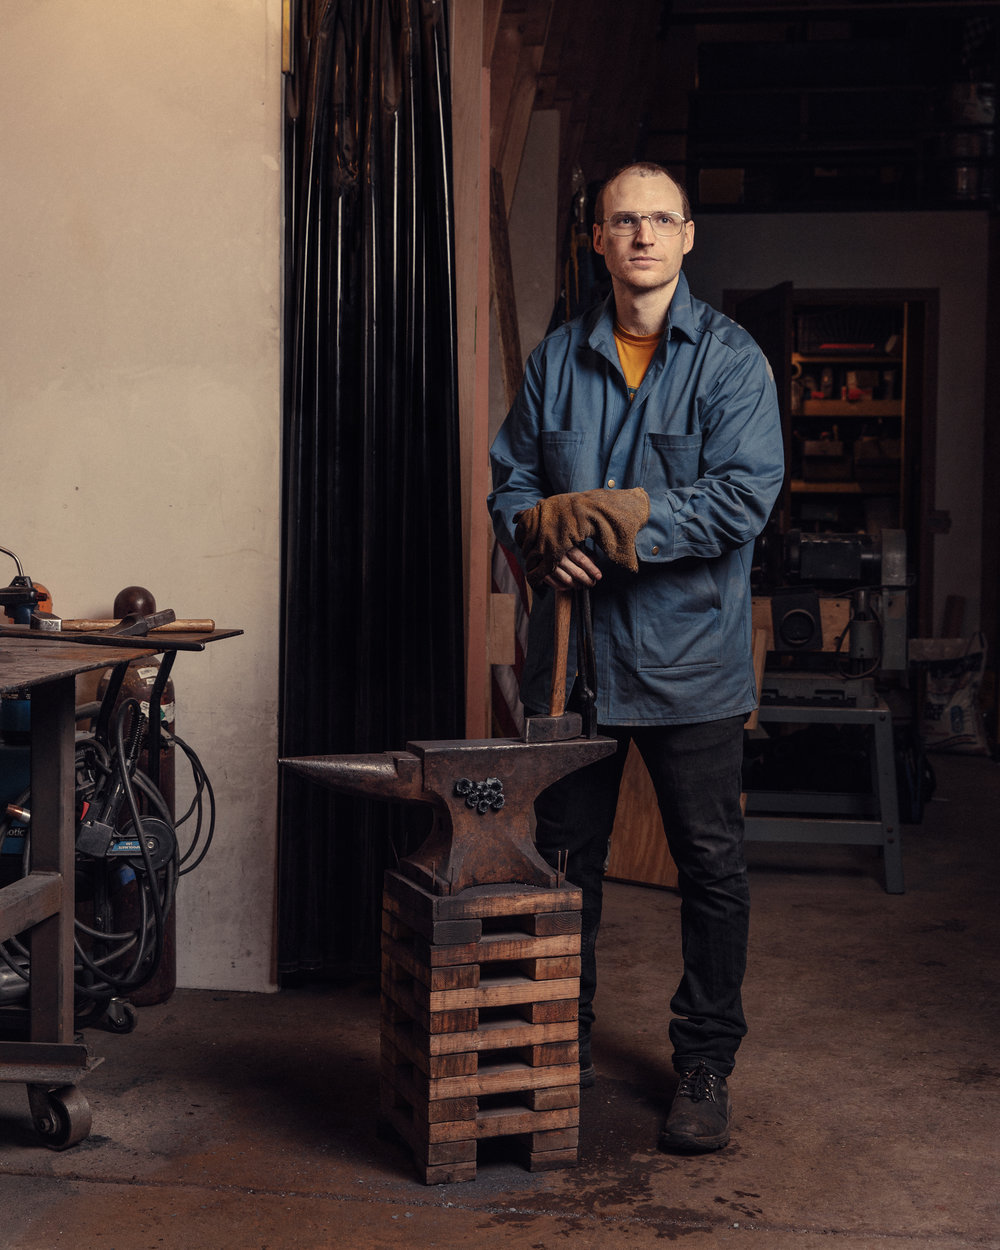 - Will Griffin was born on Bainbridge Island, Washington.  He has spent the last decade cooking professionally in NYC and studying the beauty and functionality of handmade kitchen knives.  He forges his blades by hand and crafts his knives one by one from superlative materials in Red Hook, Brooklyn